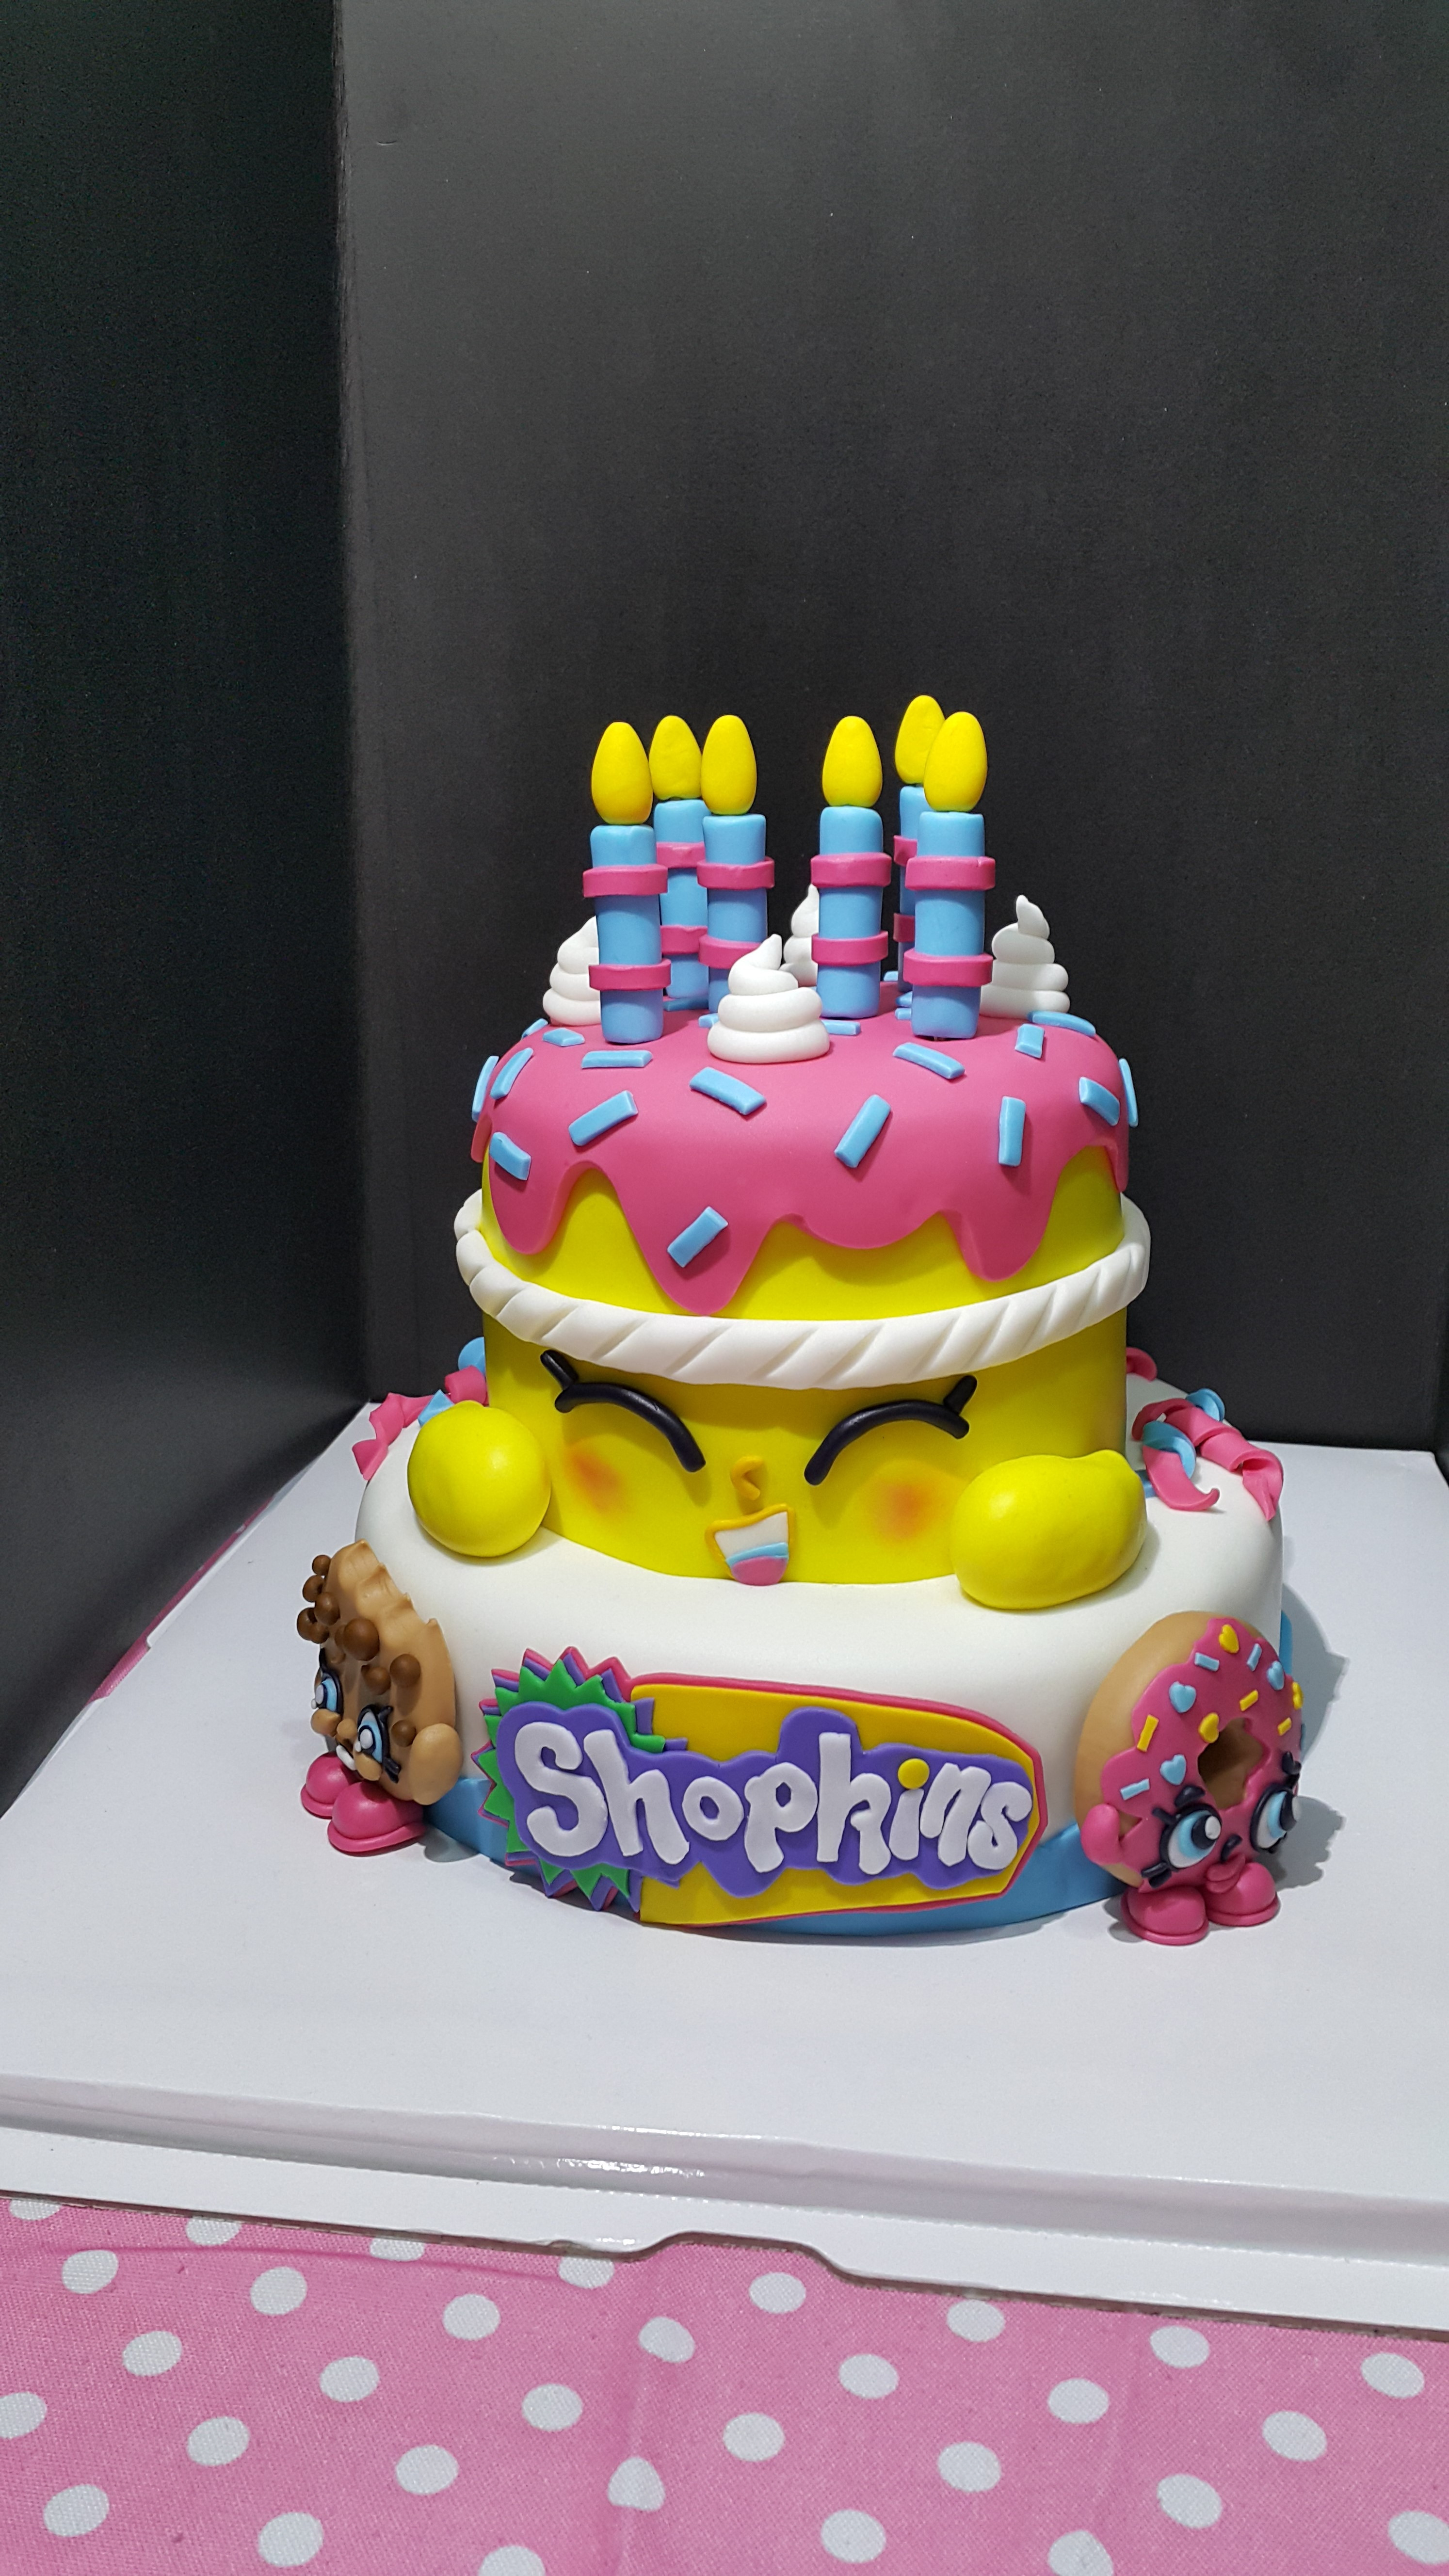 Best ideas about Shopkins Birthday Cake . Save or Pin Shopkins Cake CakeCentral Now.